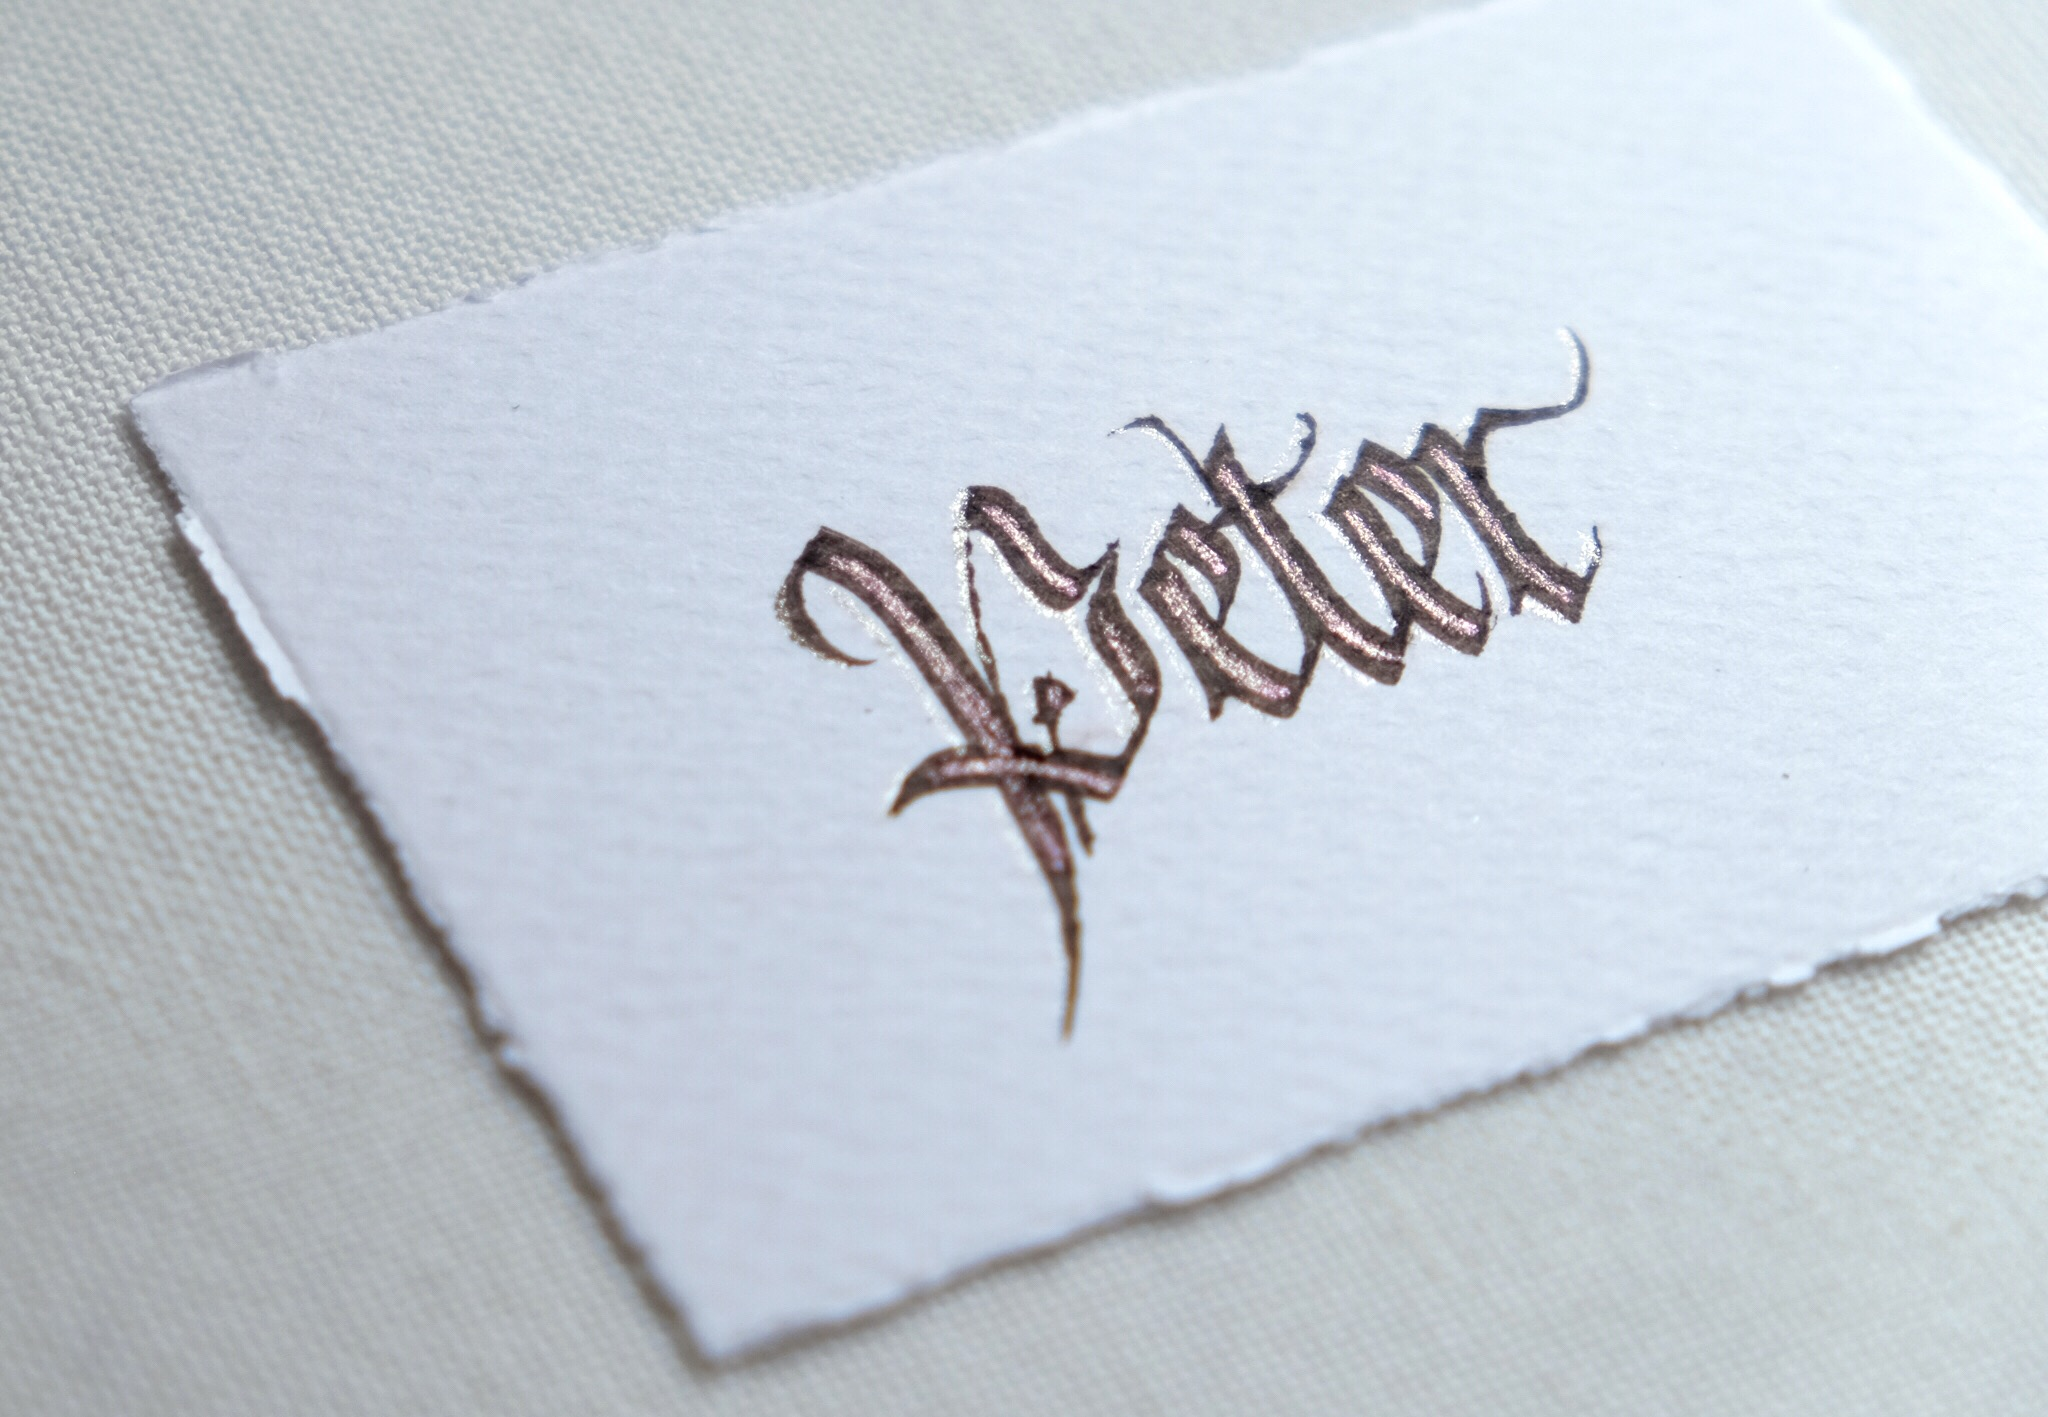 Blackletter fraktur calligraphy with decorative touches in glitter // calligraphy by Chavelli www.chavelli.com